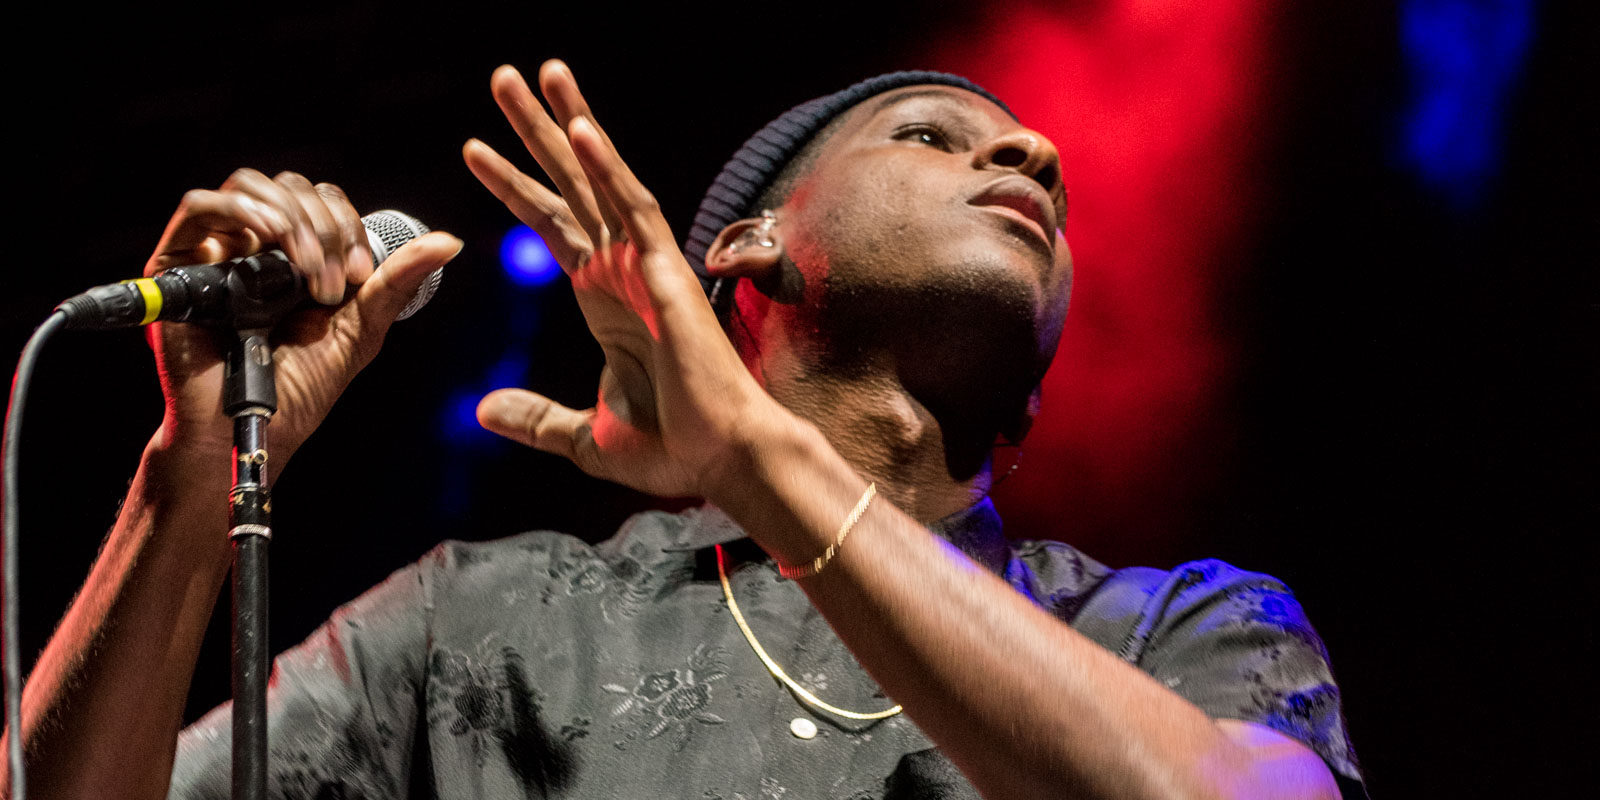 leon-bridges-pedralbes